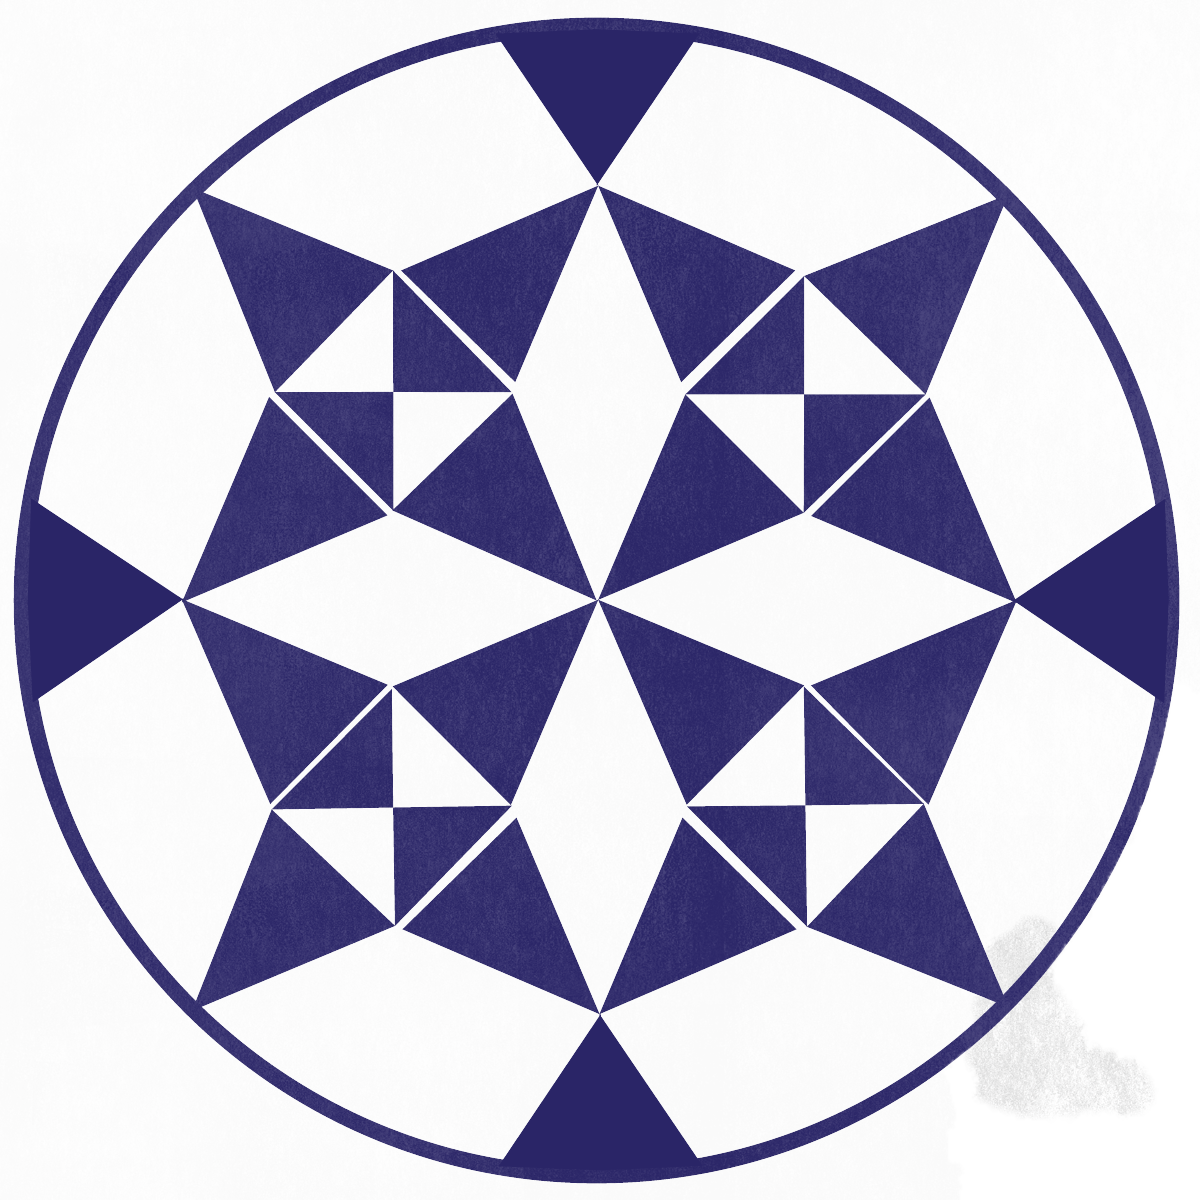 A kaleidoscope like image showing transformation as a core value.